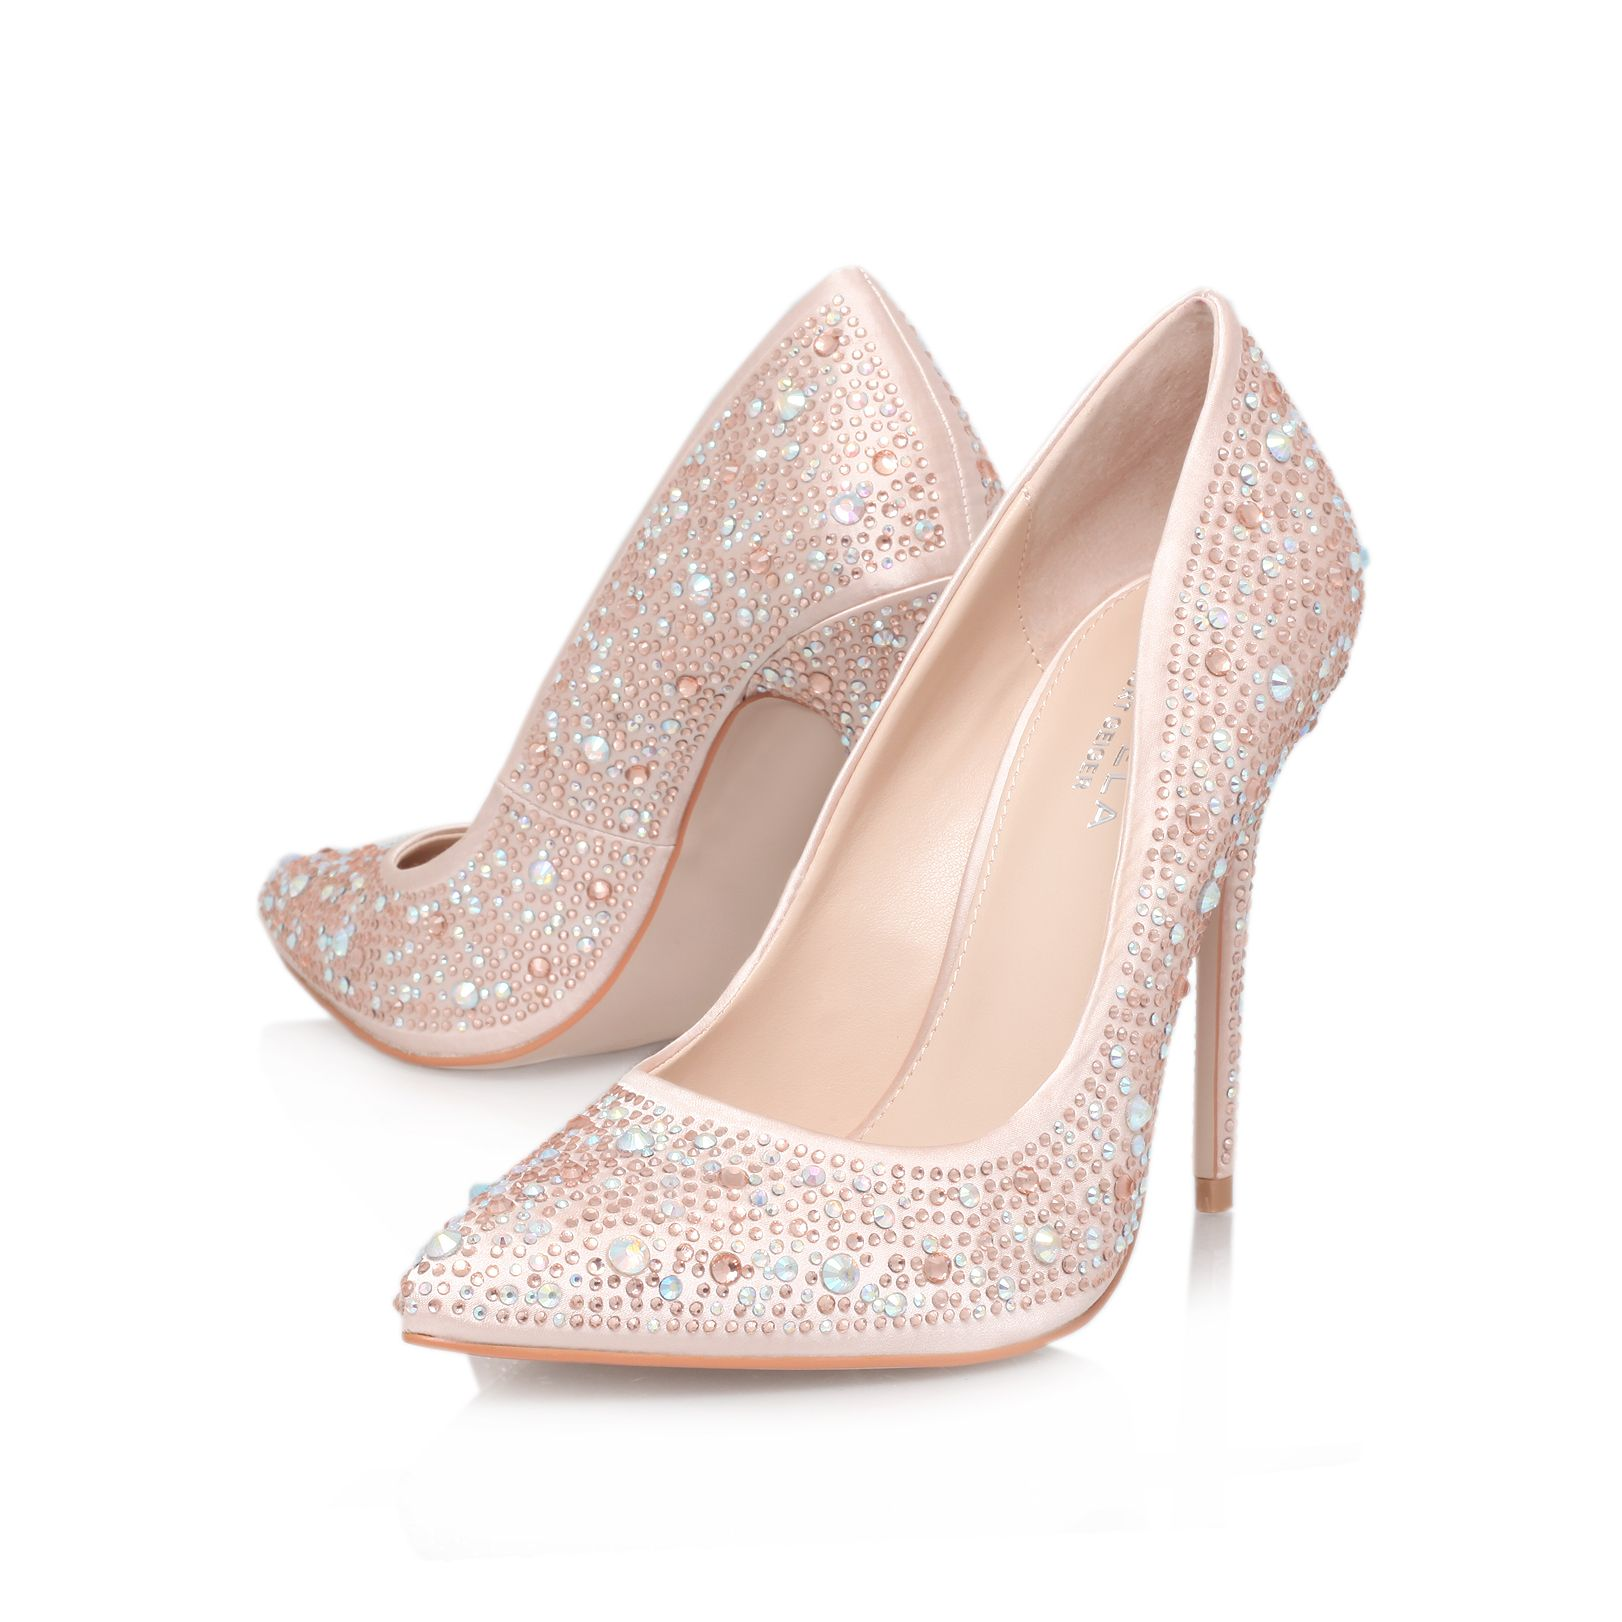 Gemini high heel court shoes